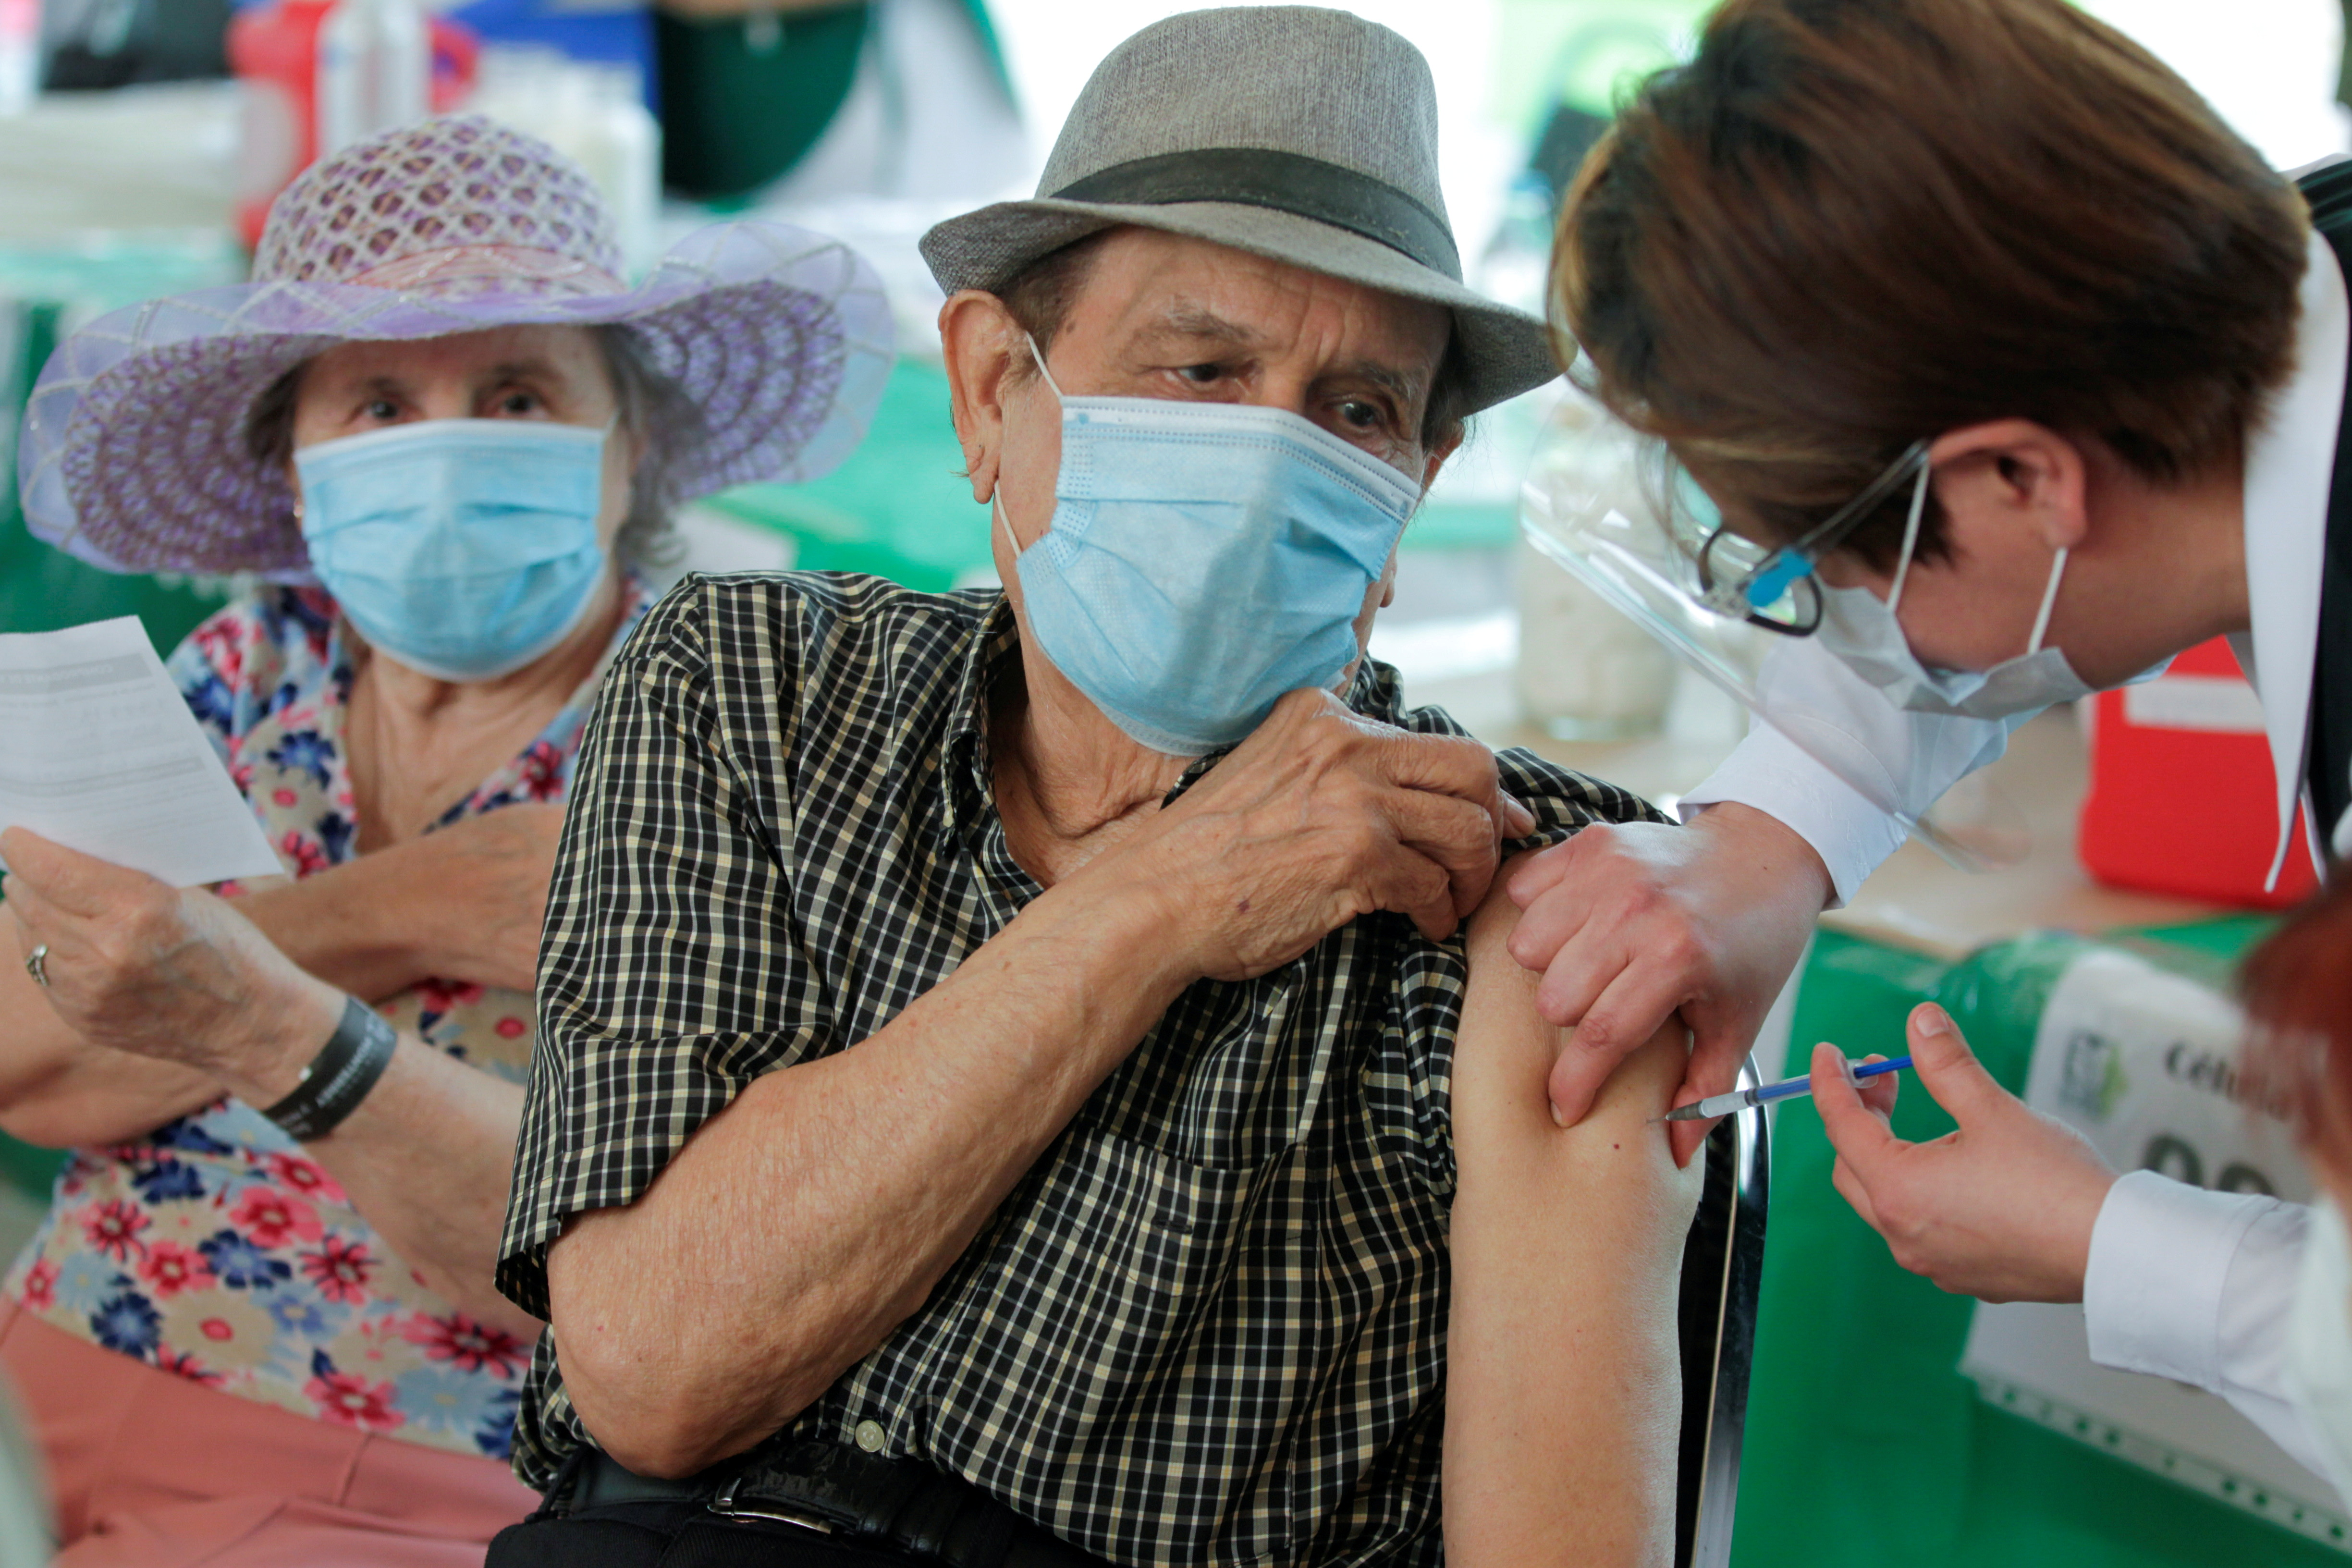 A man receives a dose of the AstraZeneca coronavirus disease (COVID-19) vaccine, during a mass vaccination program in Monterrey, Mexico April 12, 2021. REUTERS/Daniel Becerril/File Photo